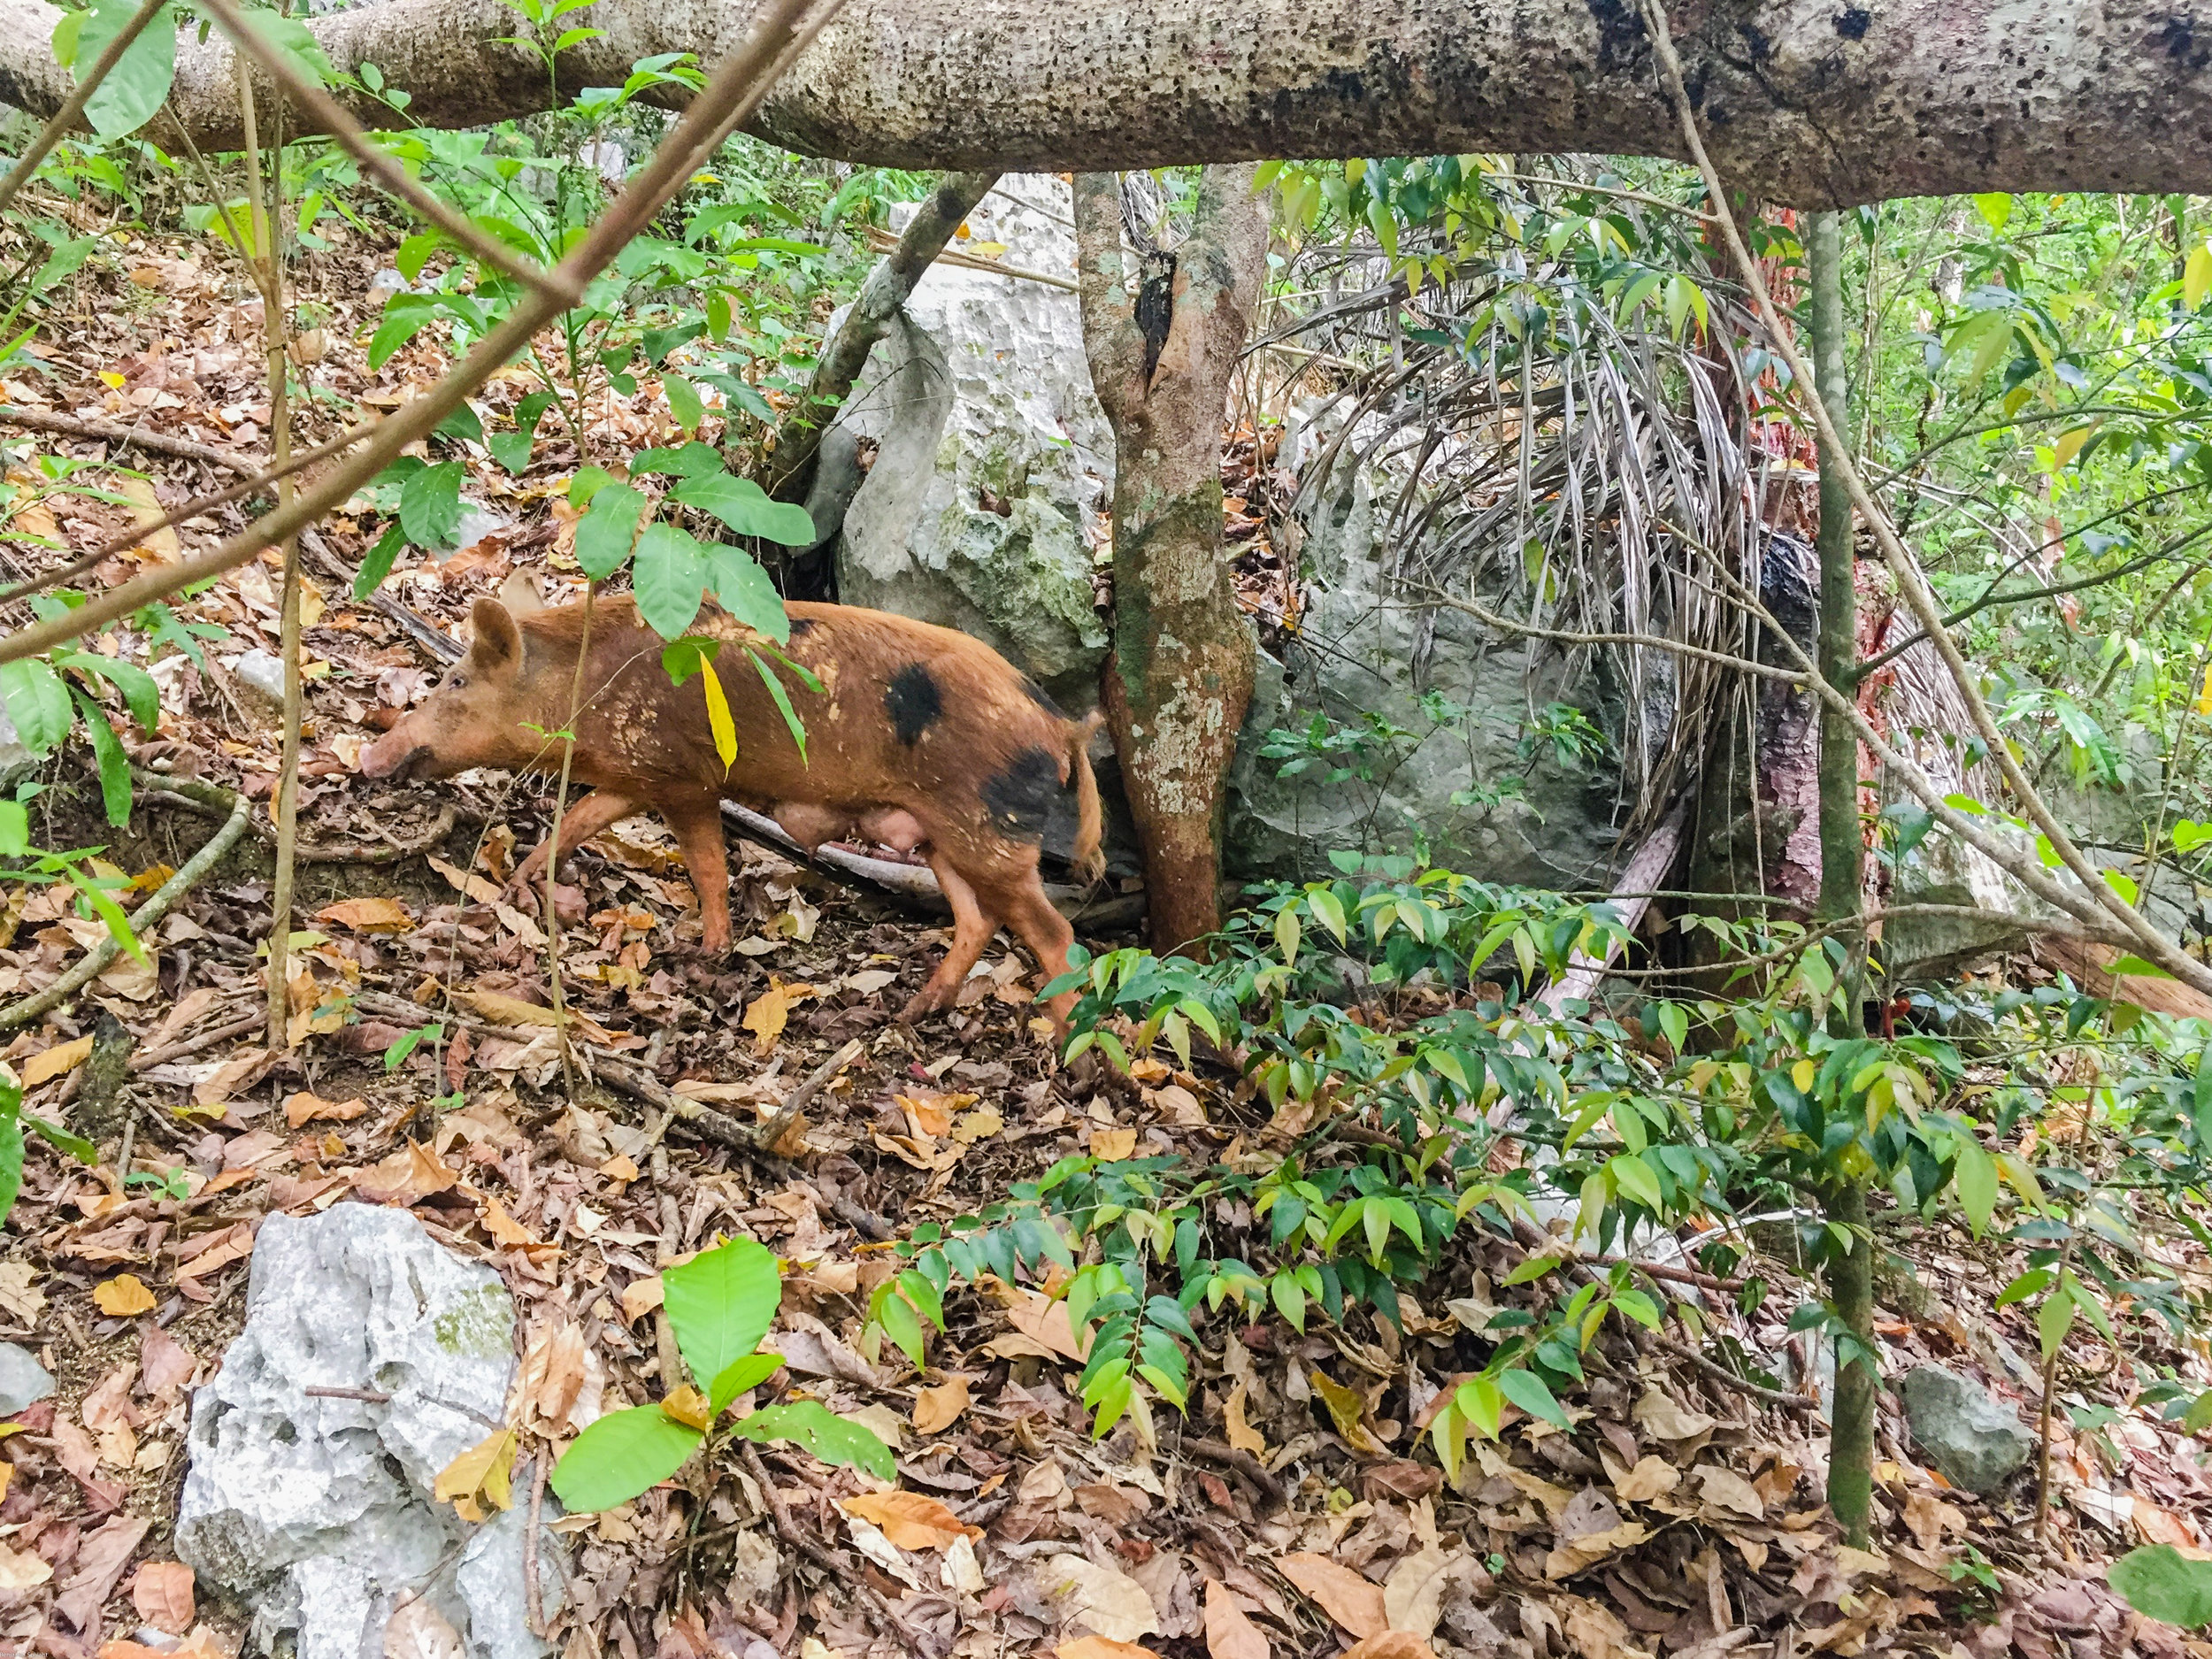 A wild boar we met in the woods on our way to some caves